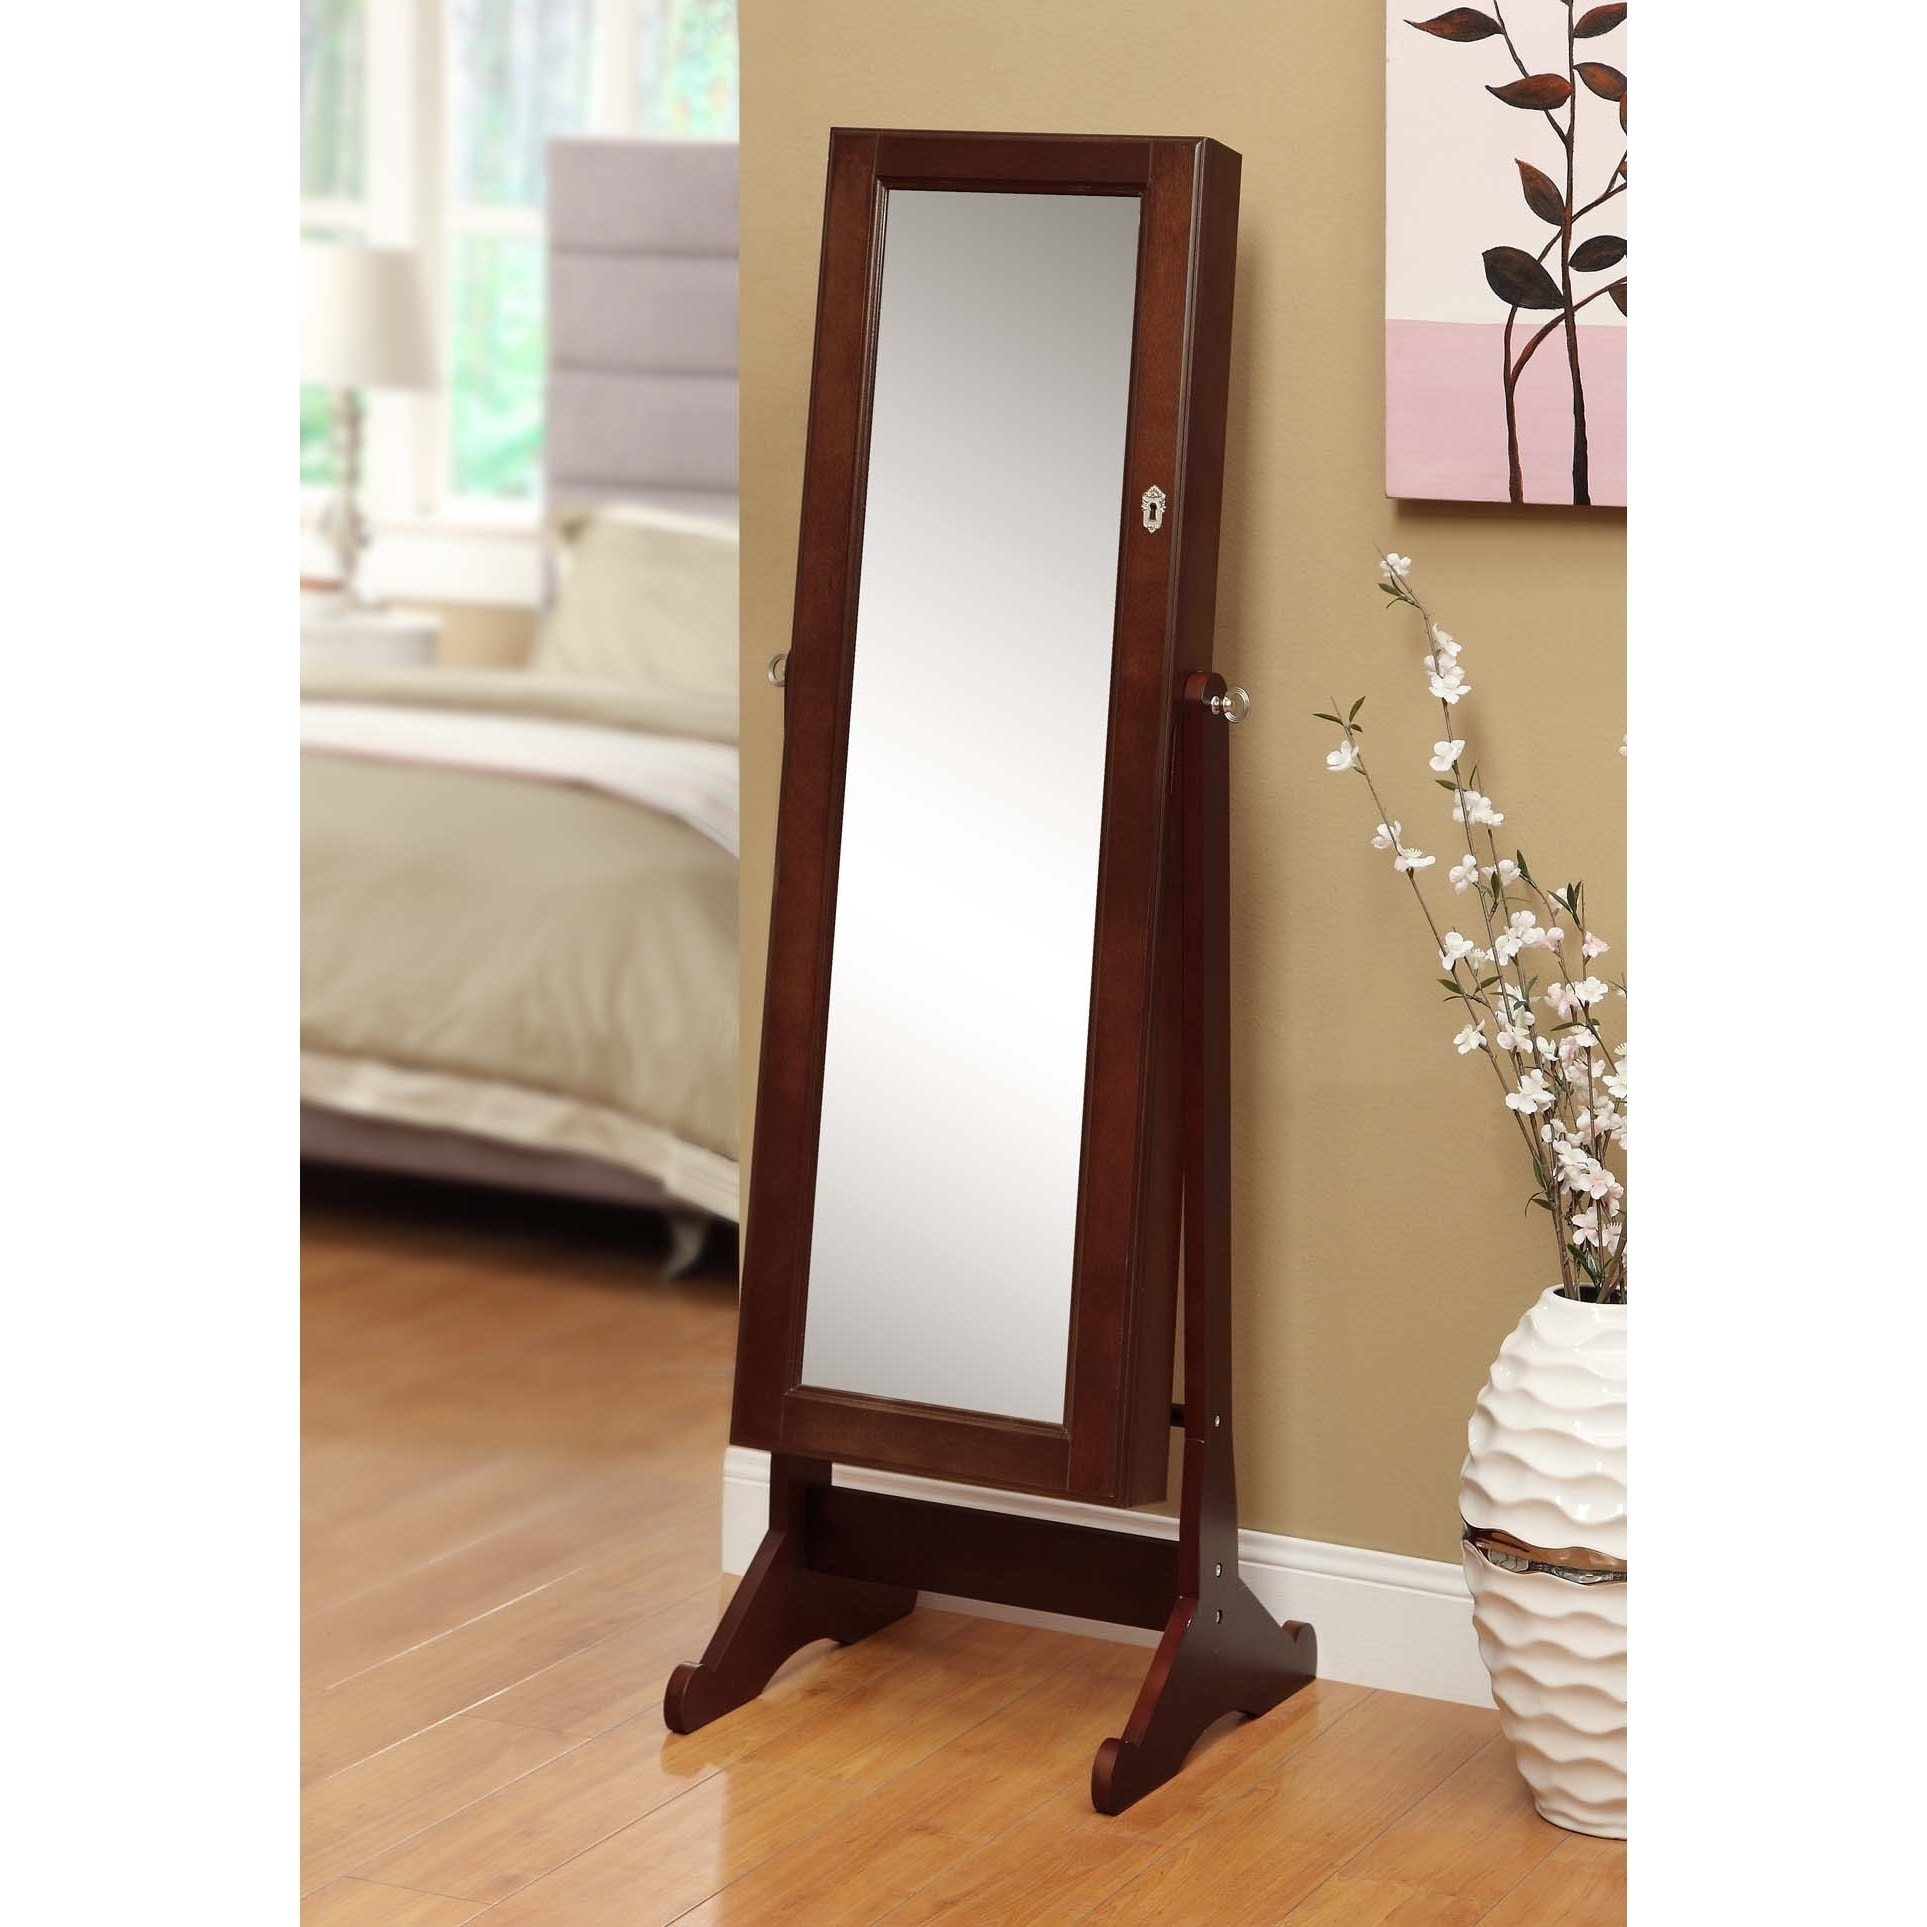 Armoire D Angle Dressing premium cherry wood cheval mirror/ jewelry cabinet organizer case